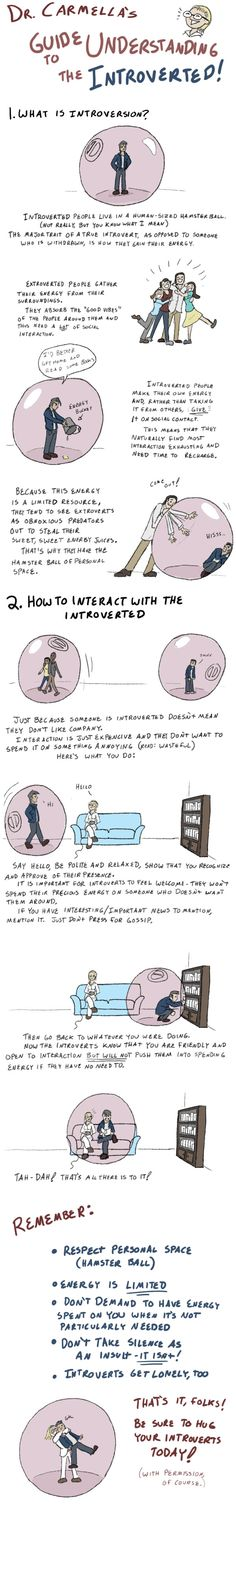 Dr. Carmella's Guide to Understanding the Introverted --> Fab!